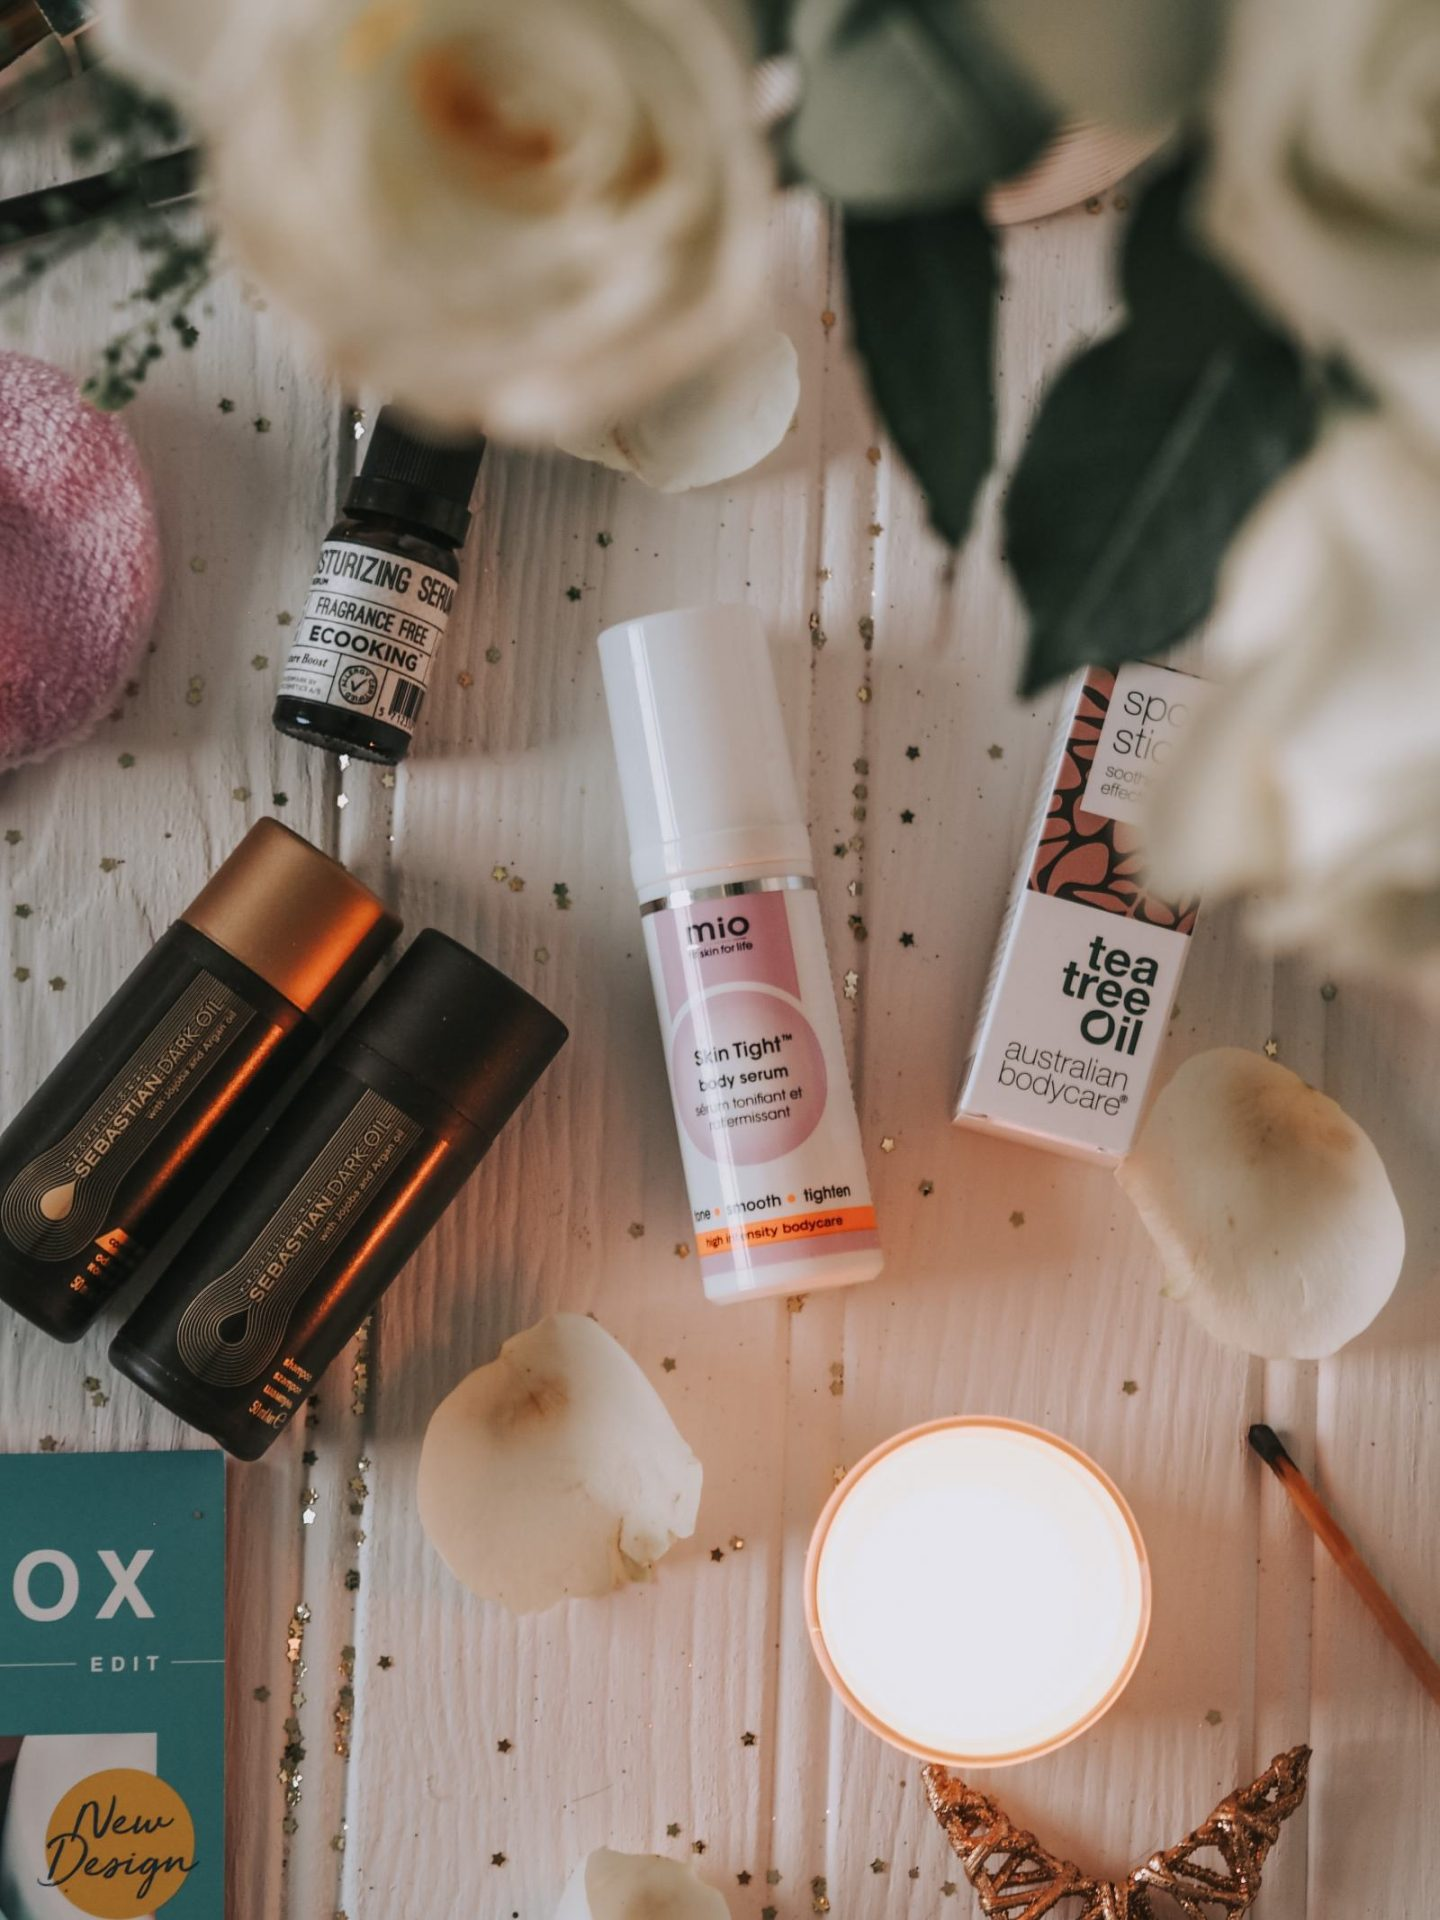 Look Fantastic Beauty Box - January 2020 Edit